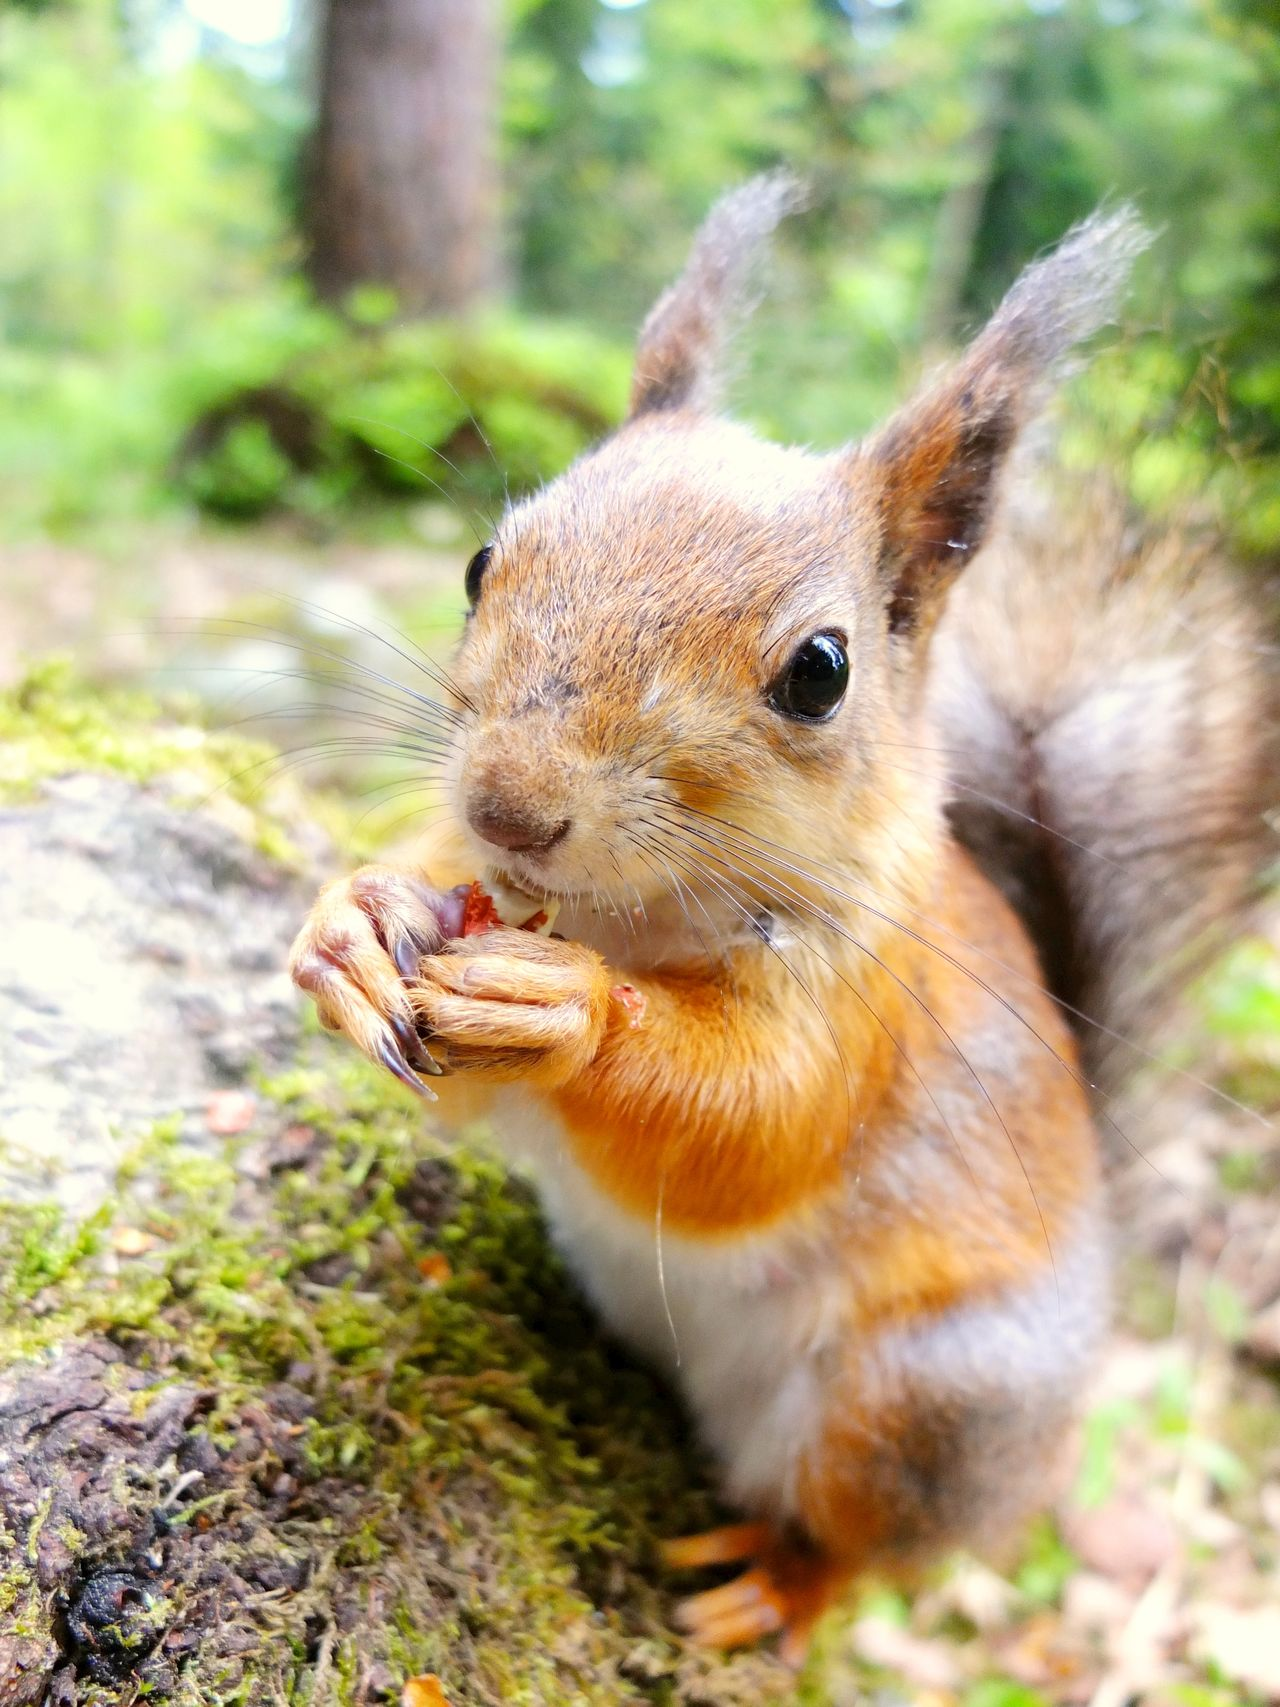 Closeup of squirrel eating a nut Adorable Animal Themes Animal Wildlife Animals In The Wild Cute Day Eating Finland Furry Helsinki Lovely Lovelynatureshots Mammal Nature No People Nut One Animal Outdoors Rodent Seurasaari Small Squirrel Squirrel Squirrel Closeup Squirrel Photo